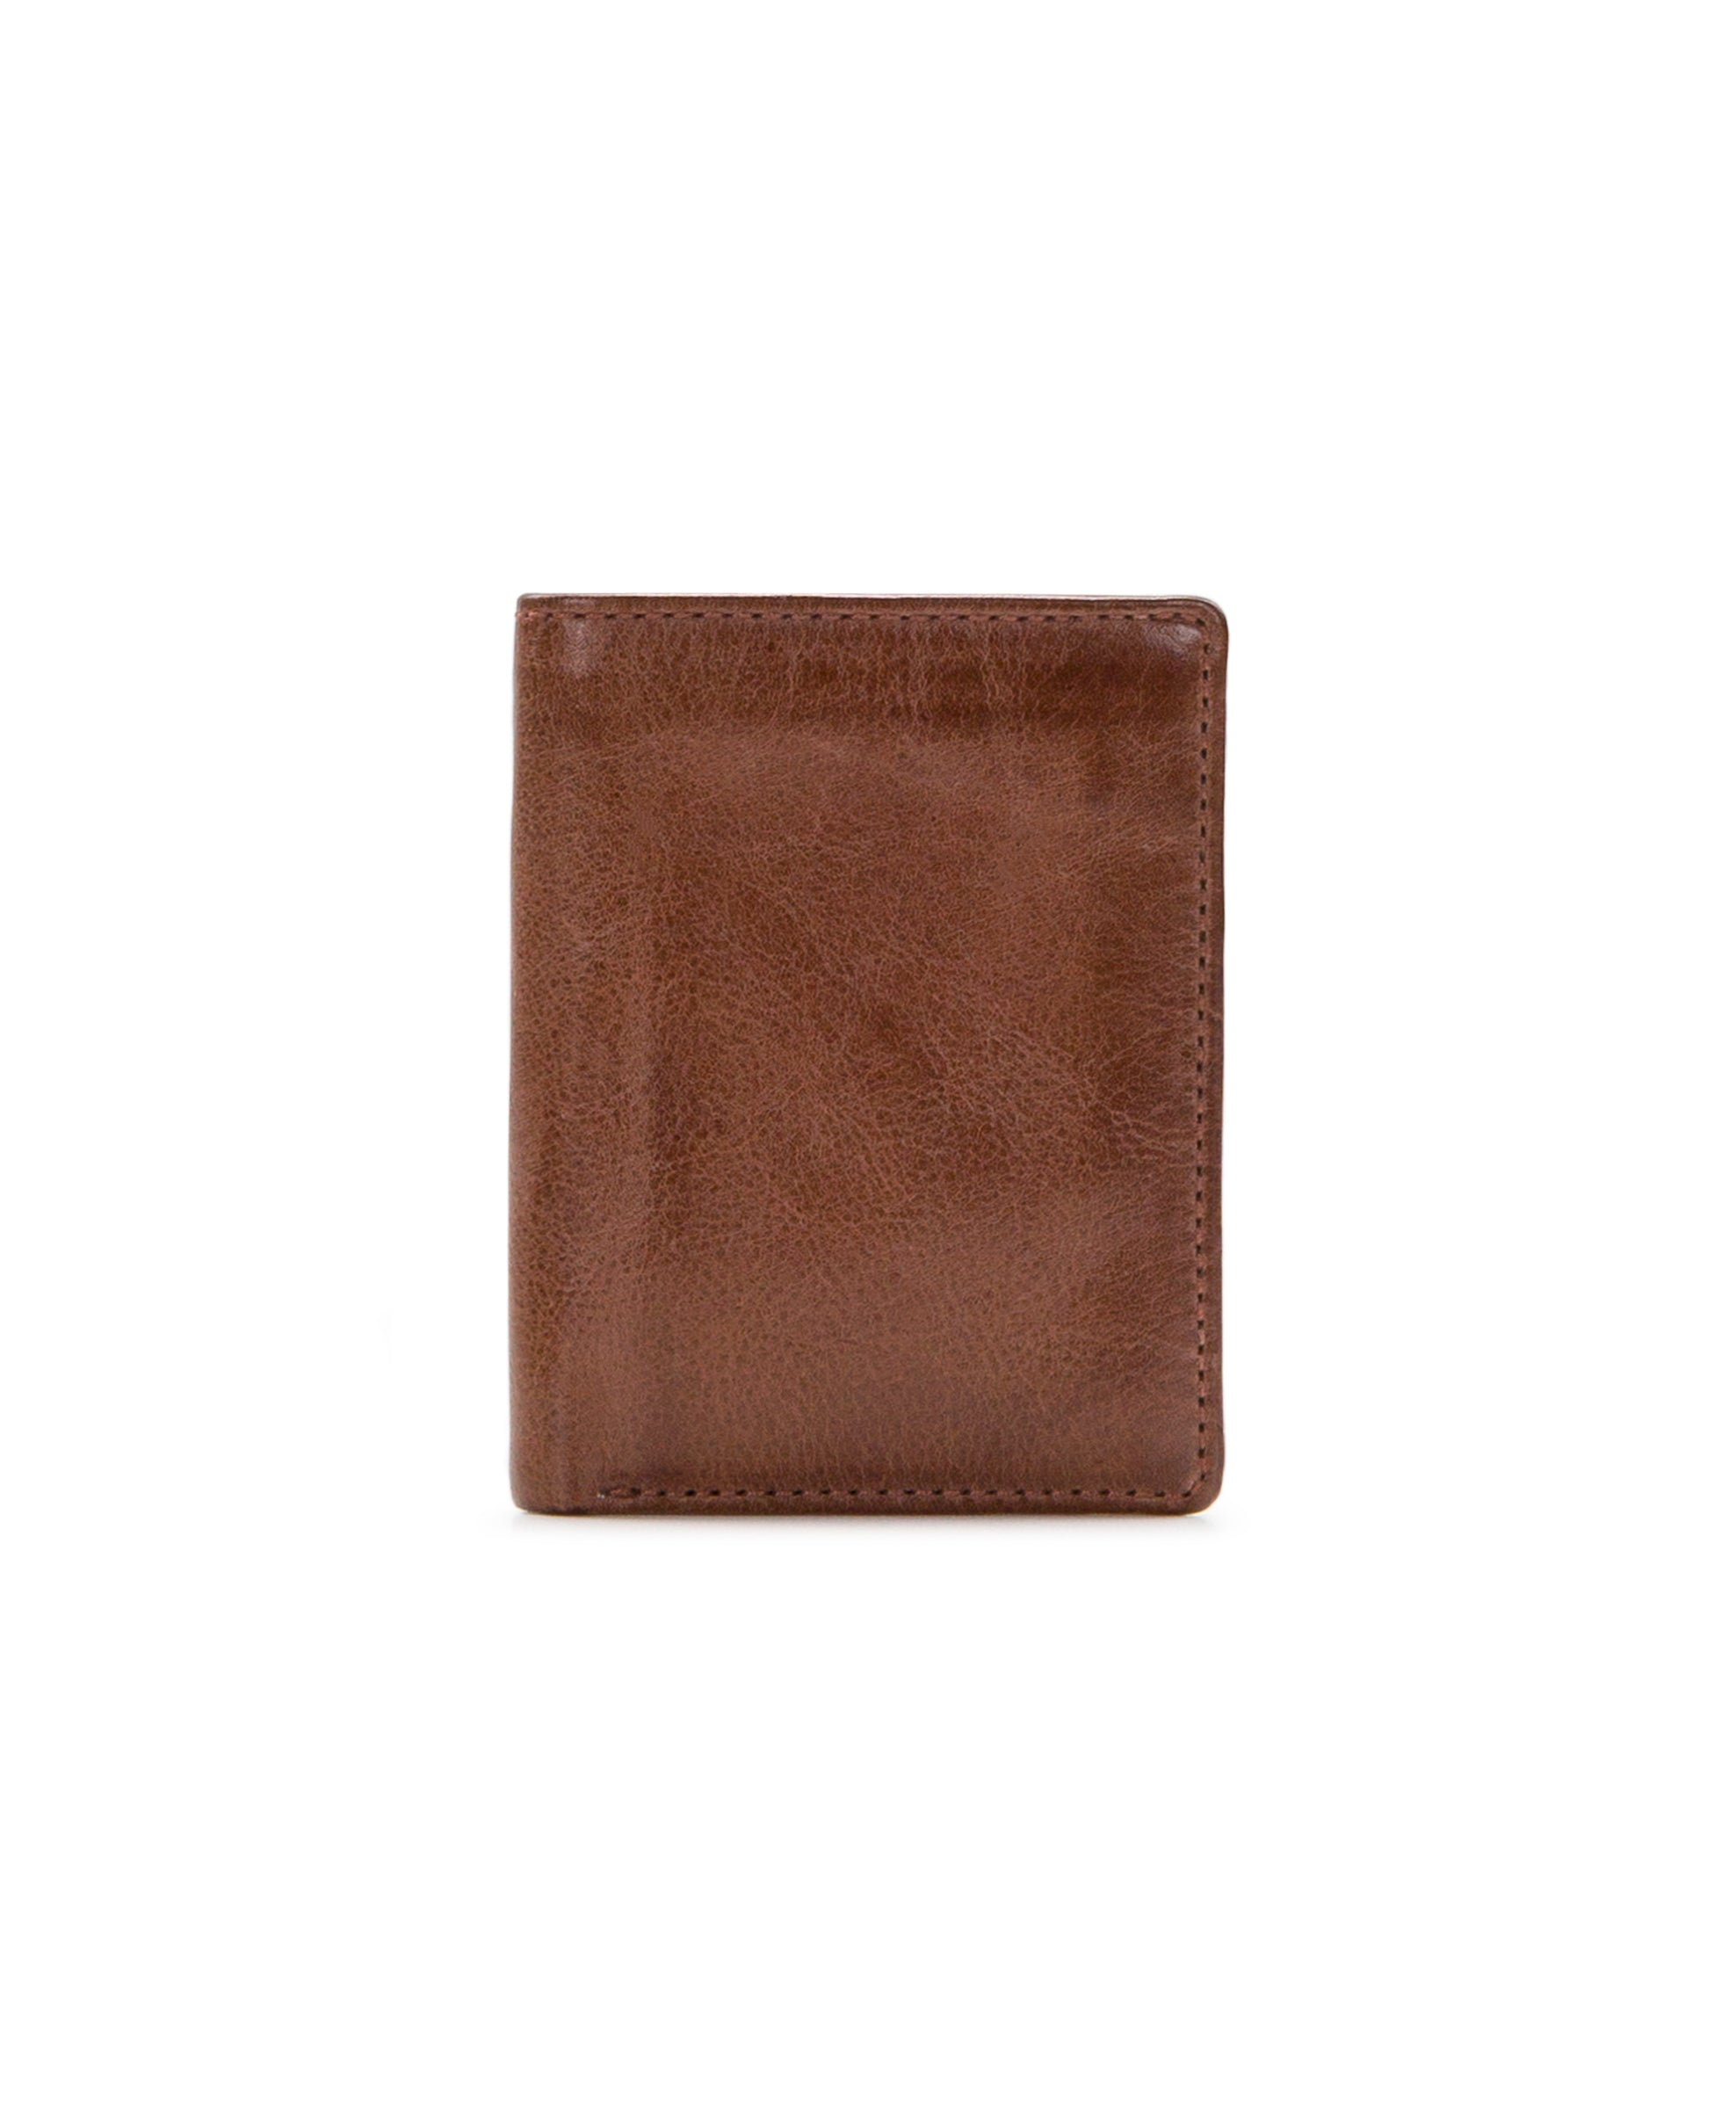 Trifold Wallet - Vintage Leather